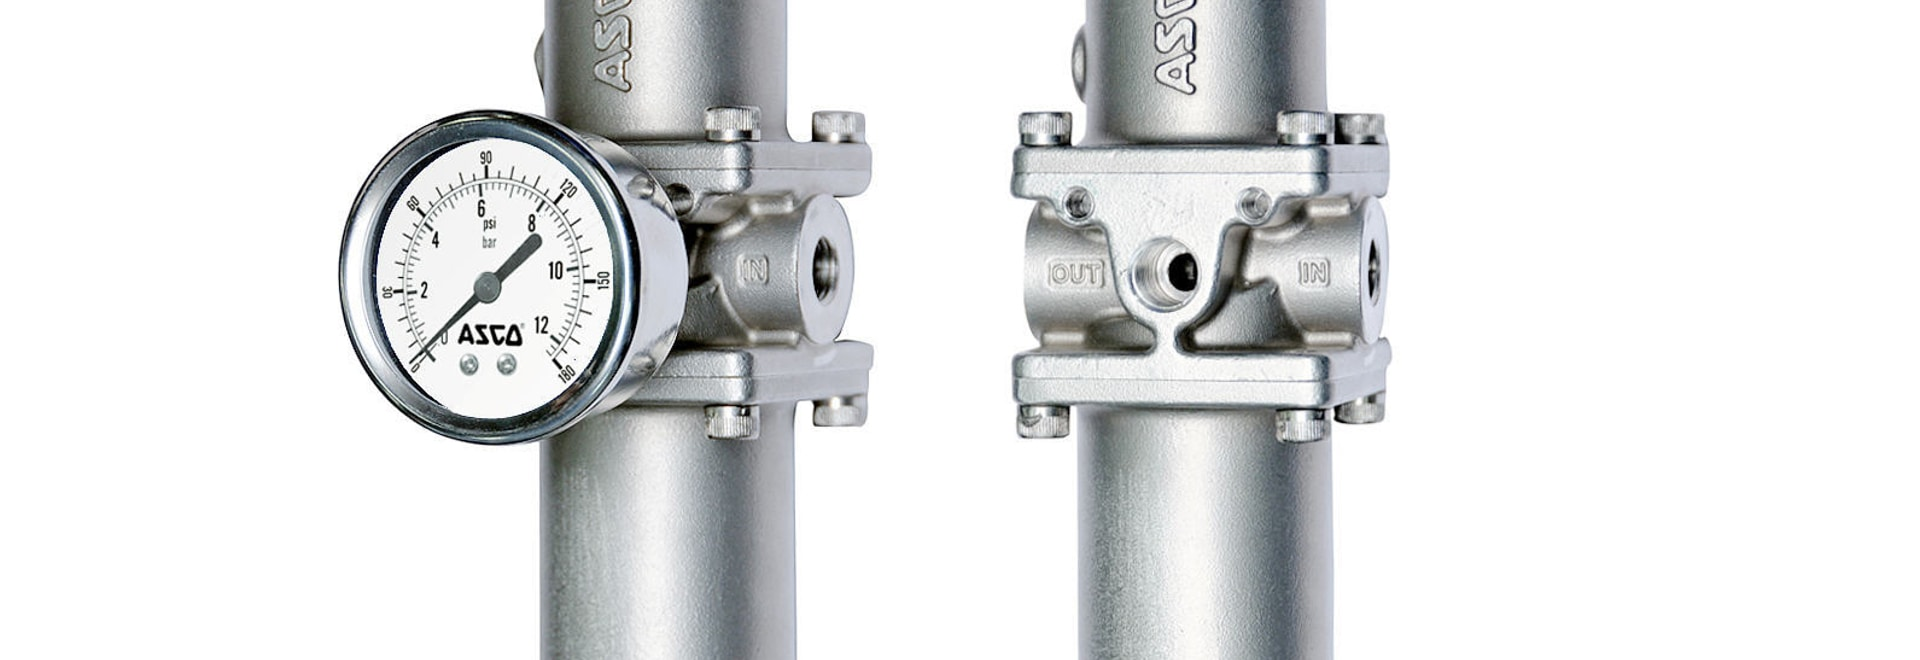 ASCO expand Stainless Steel Filter Regulator range with addition of a compact offering